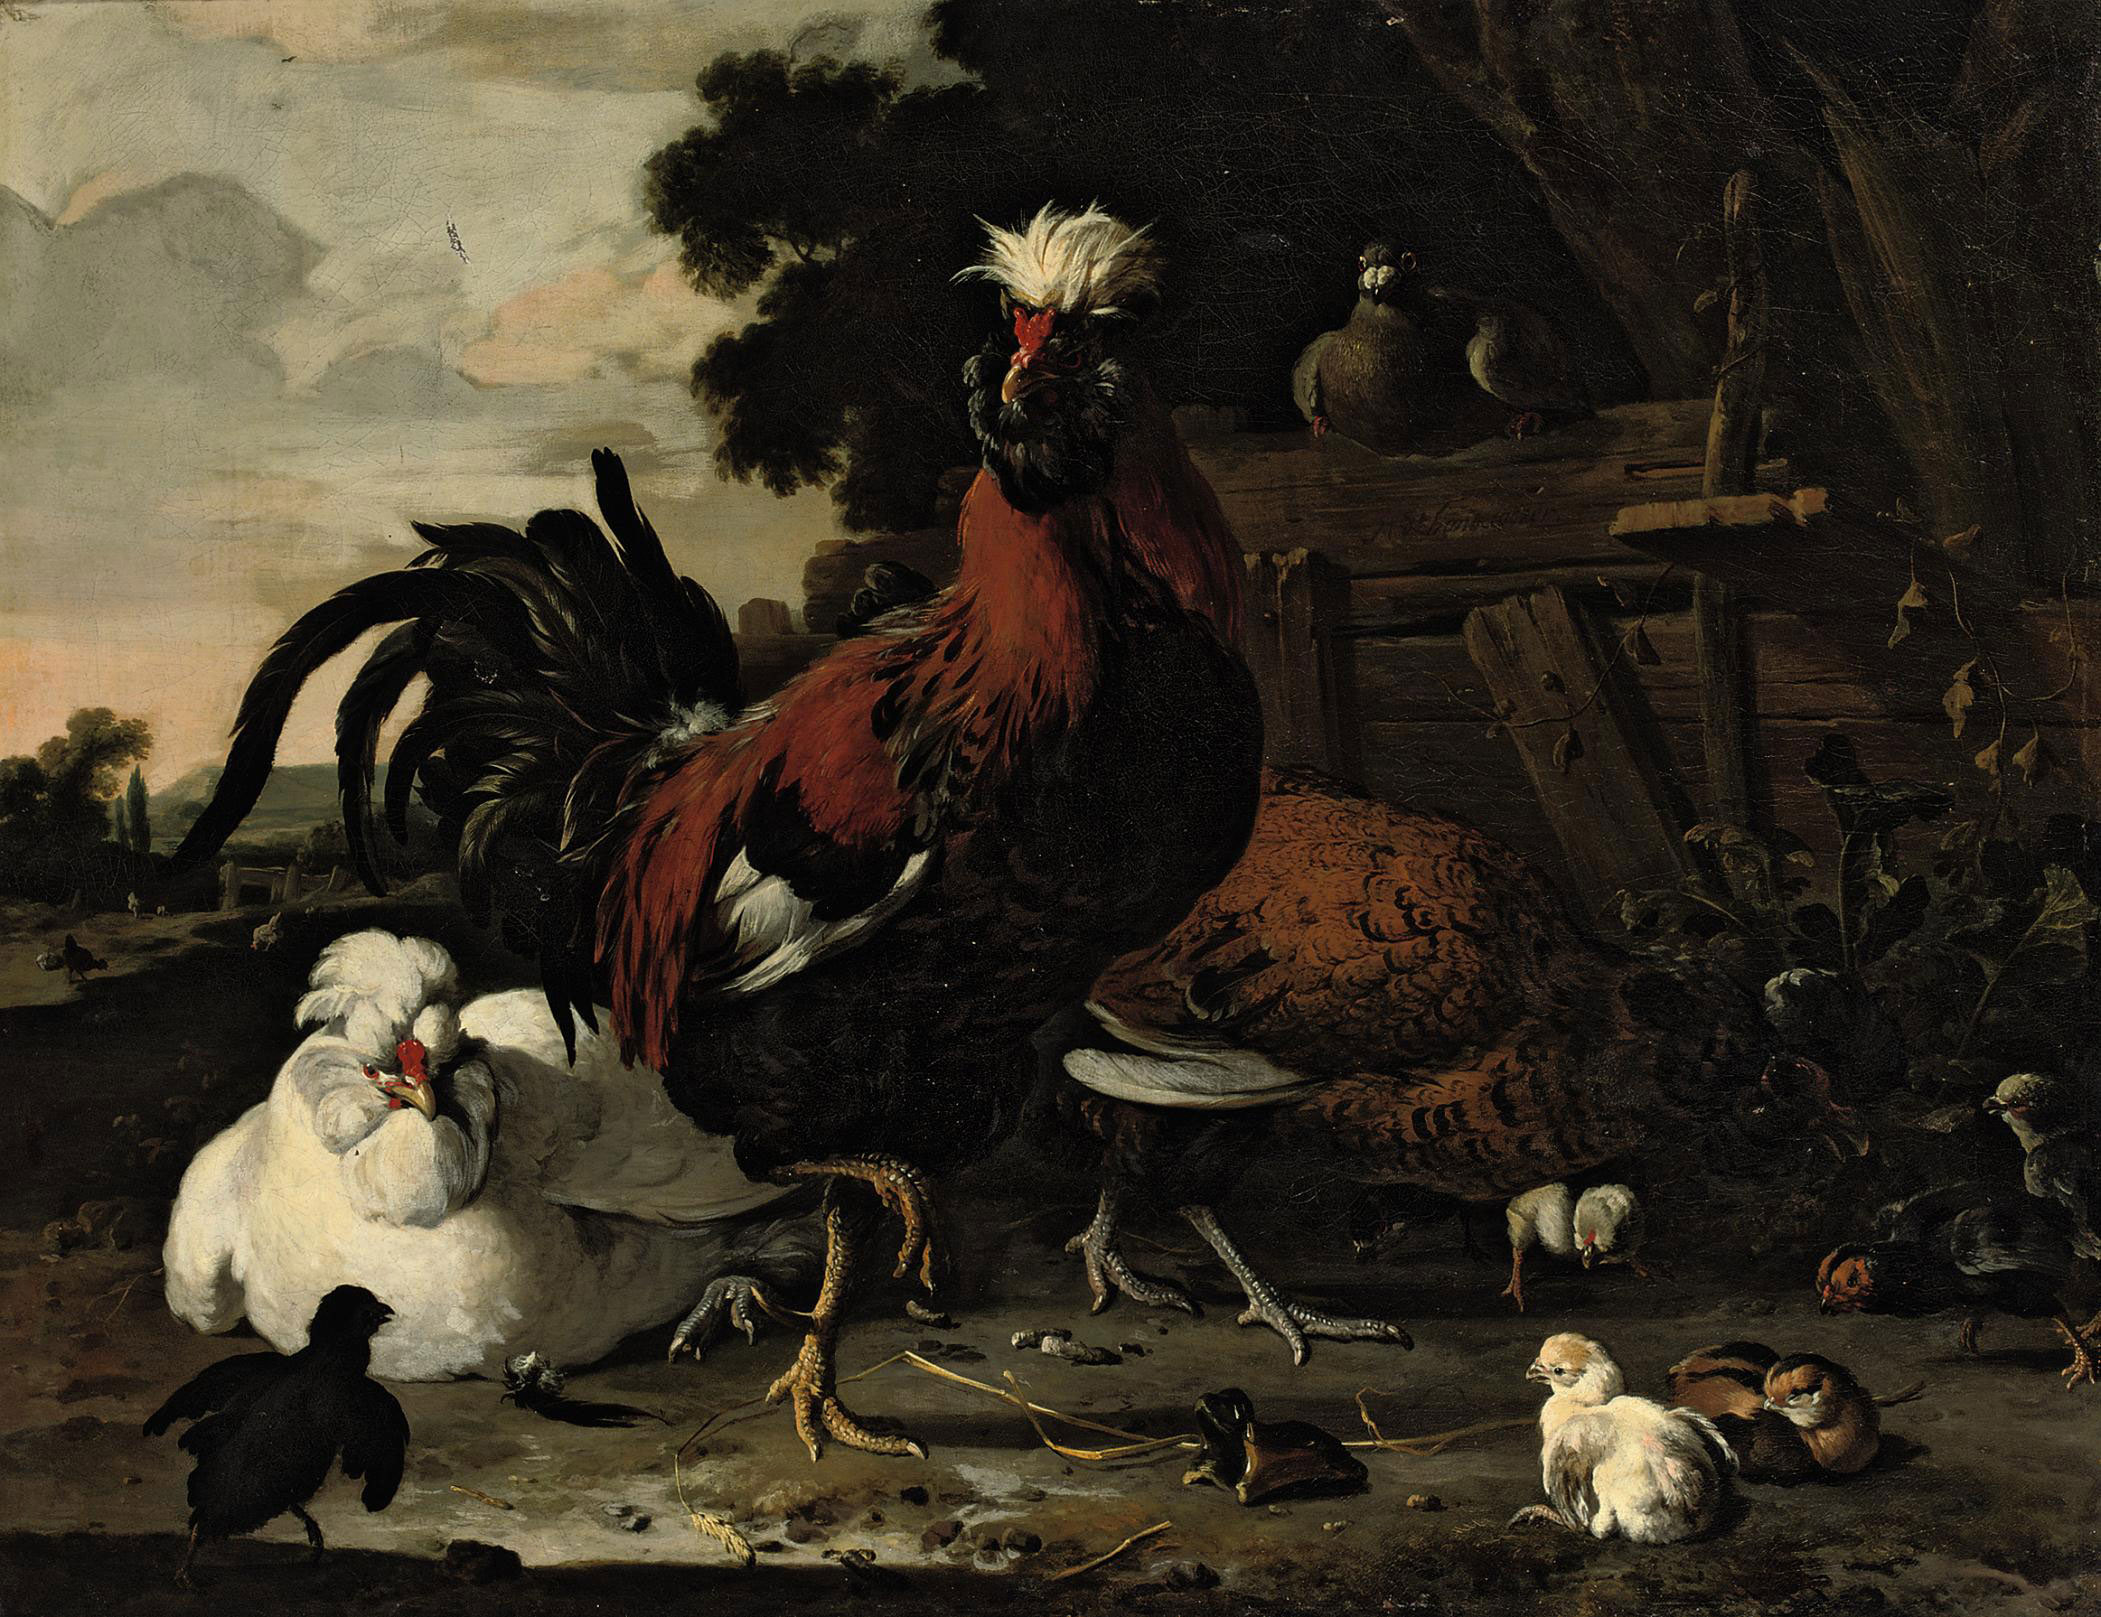 A rooster, hens, chicks and a pigeon near a wood paling in a landscape